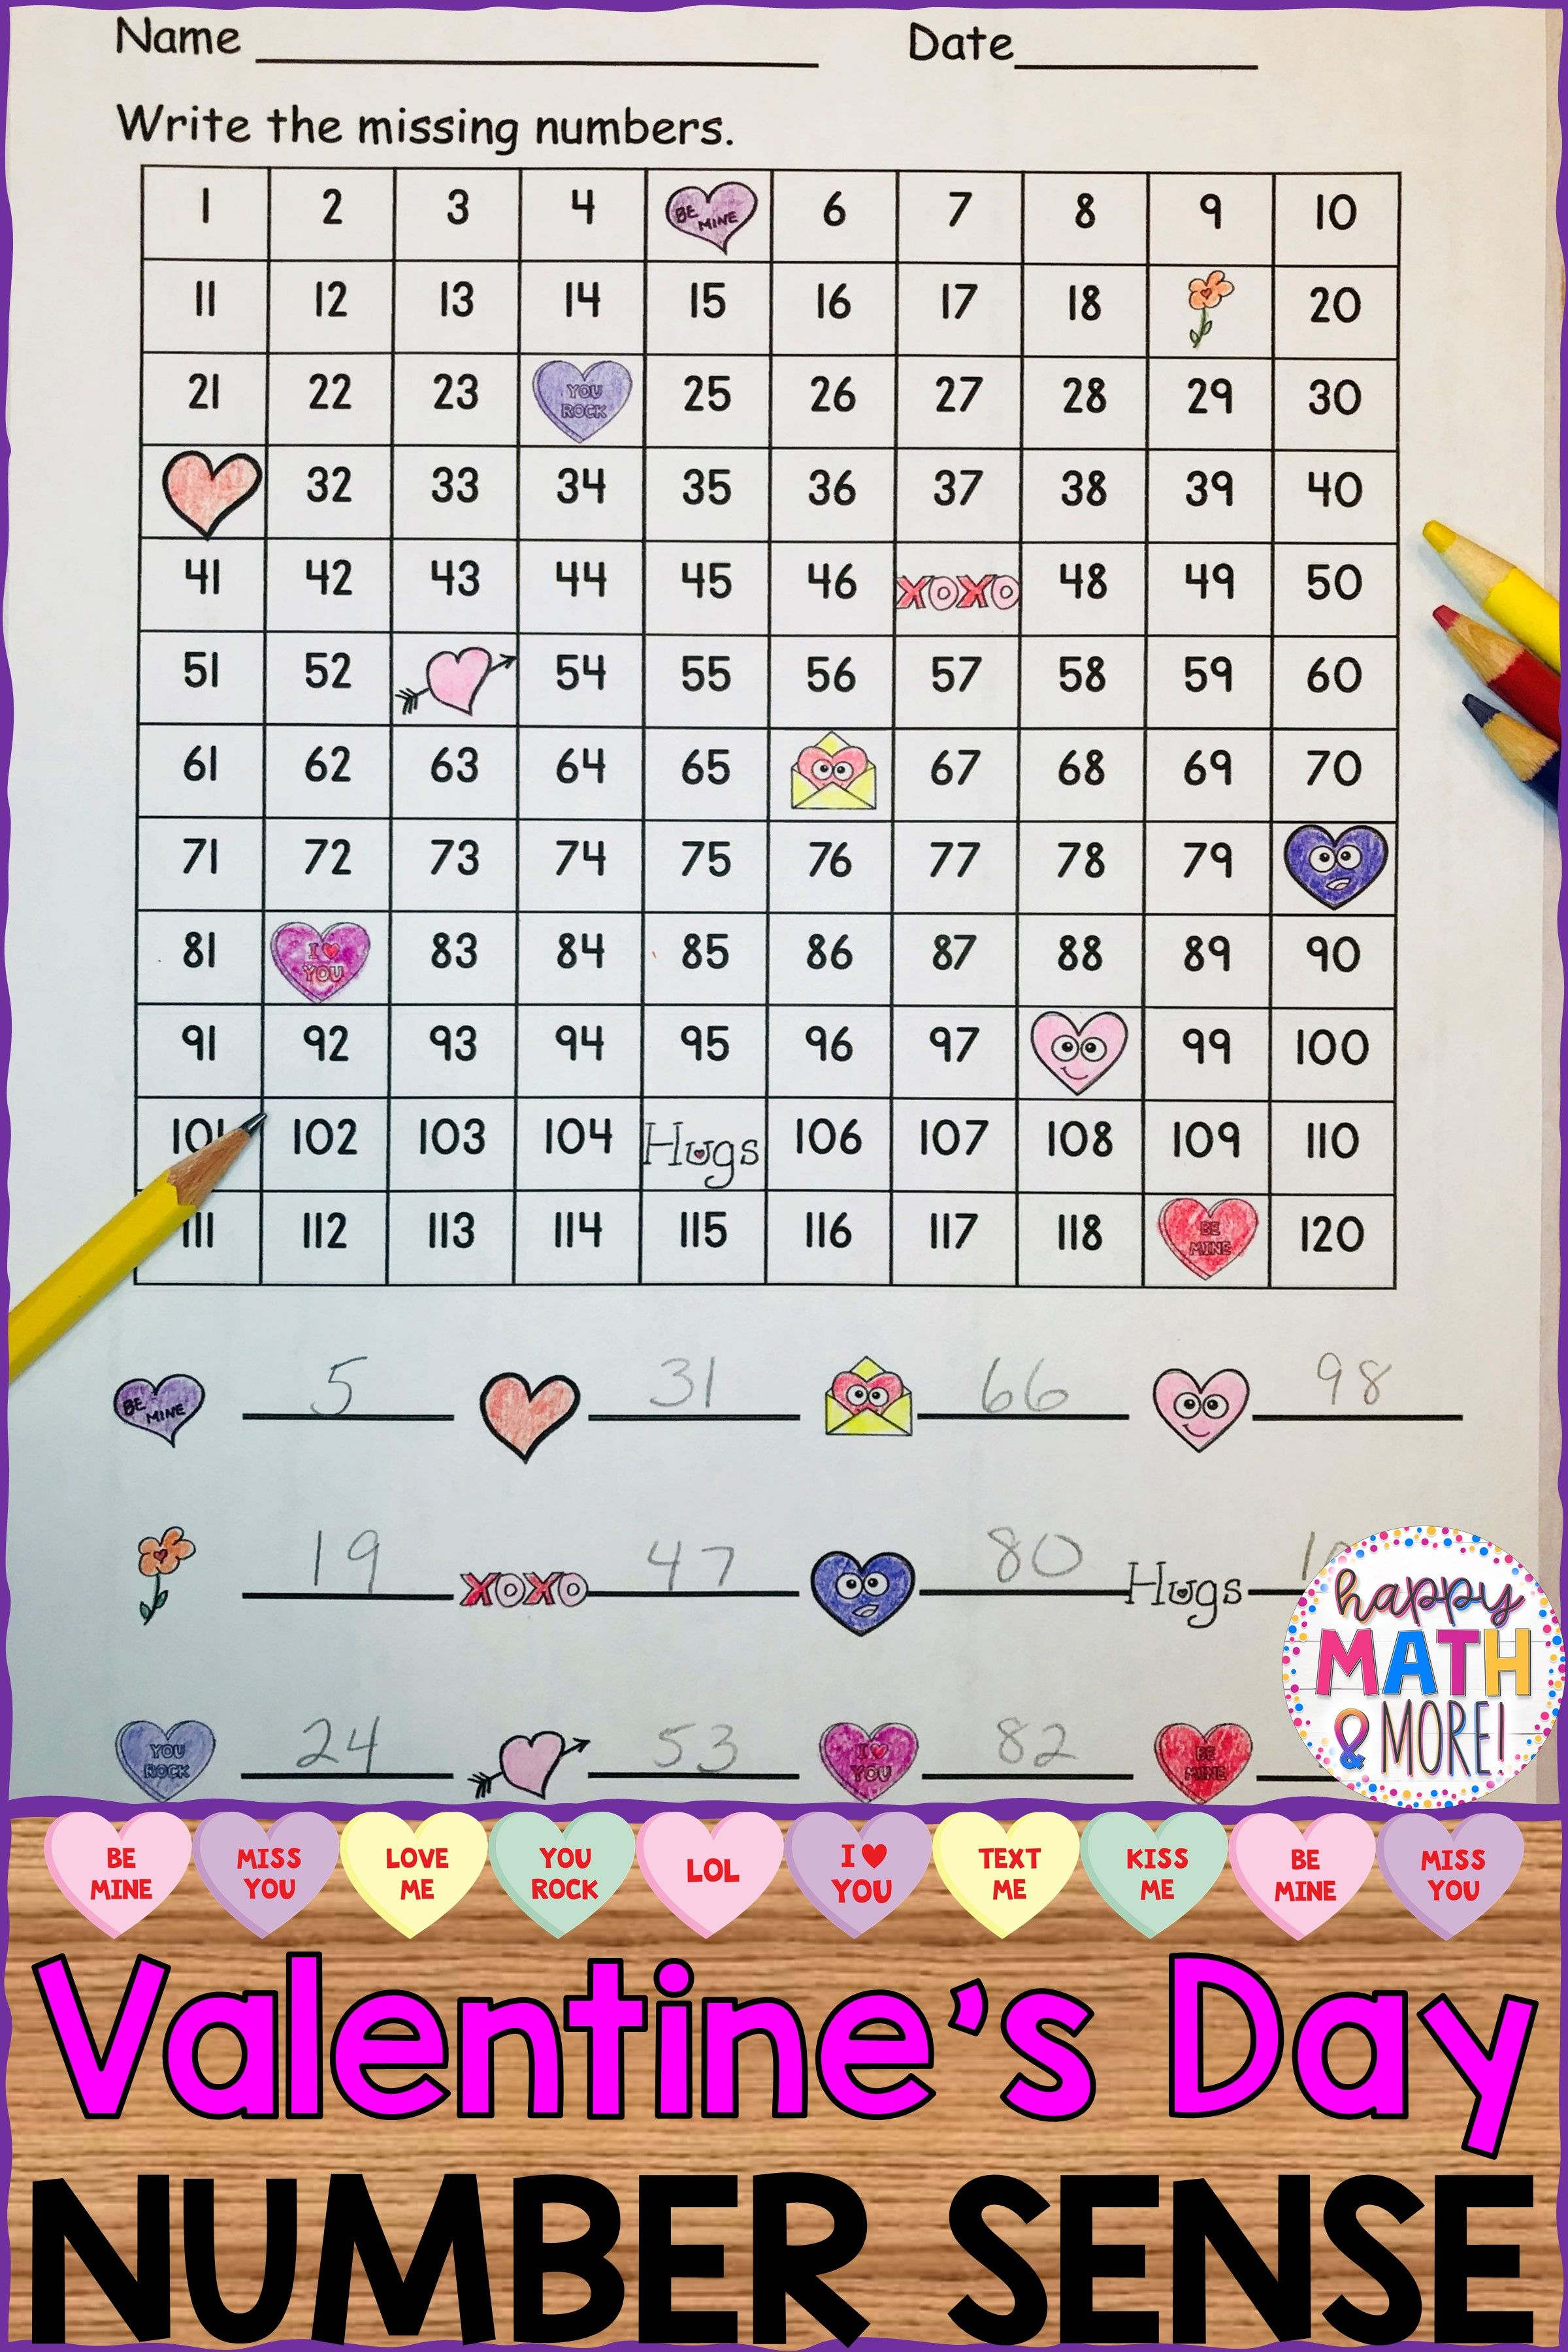 1 Differentiated Set Of 120 Charts With Numbers Hiding